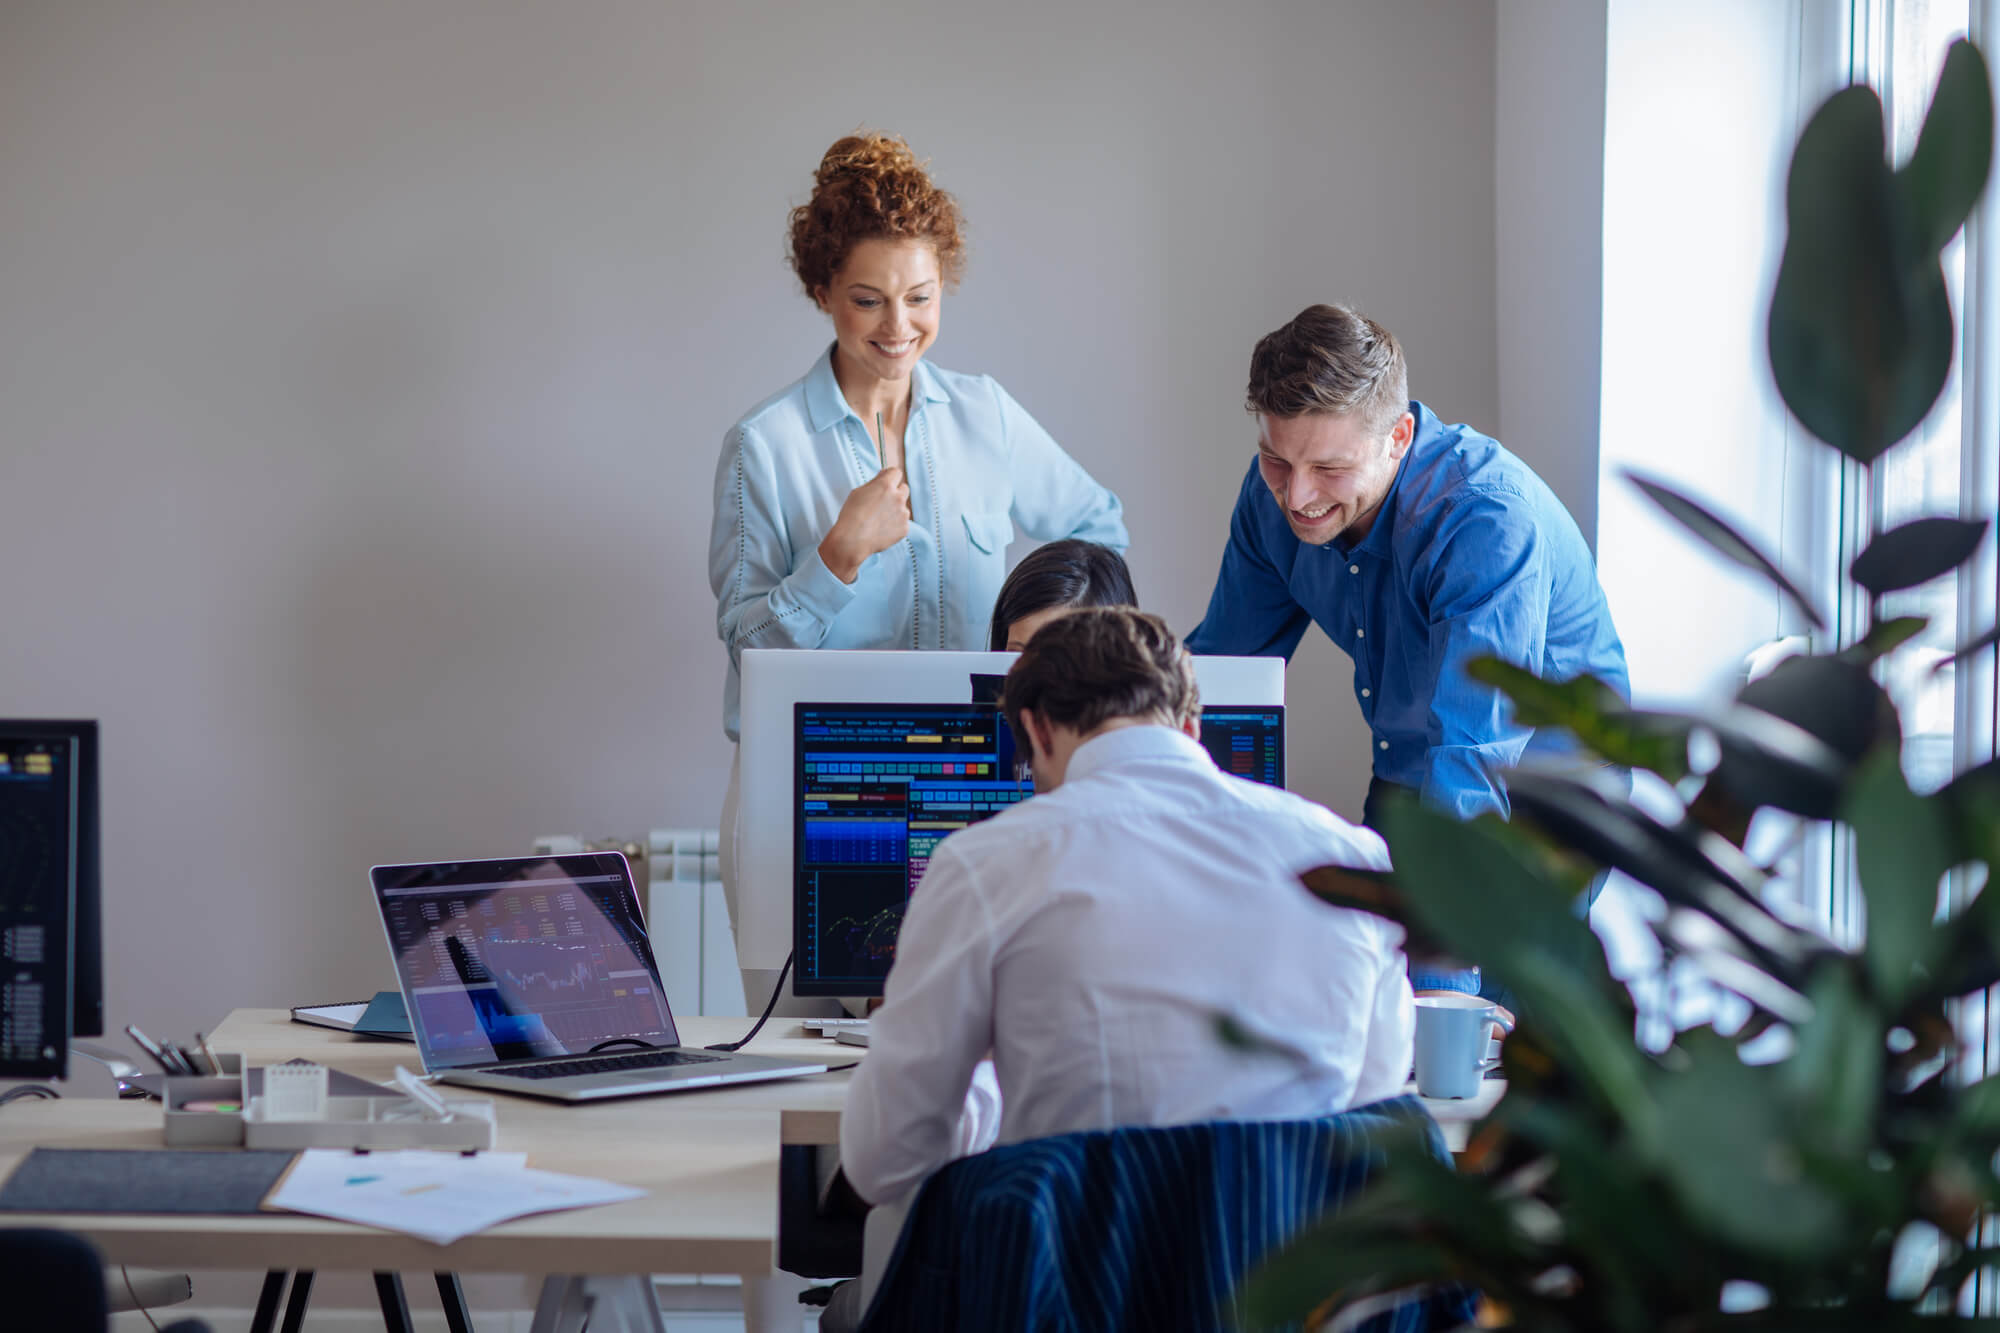 Flexible Working Contracts: More Rights for Service Employees